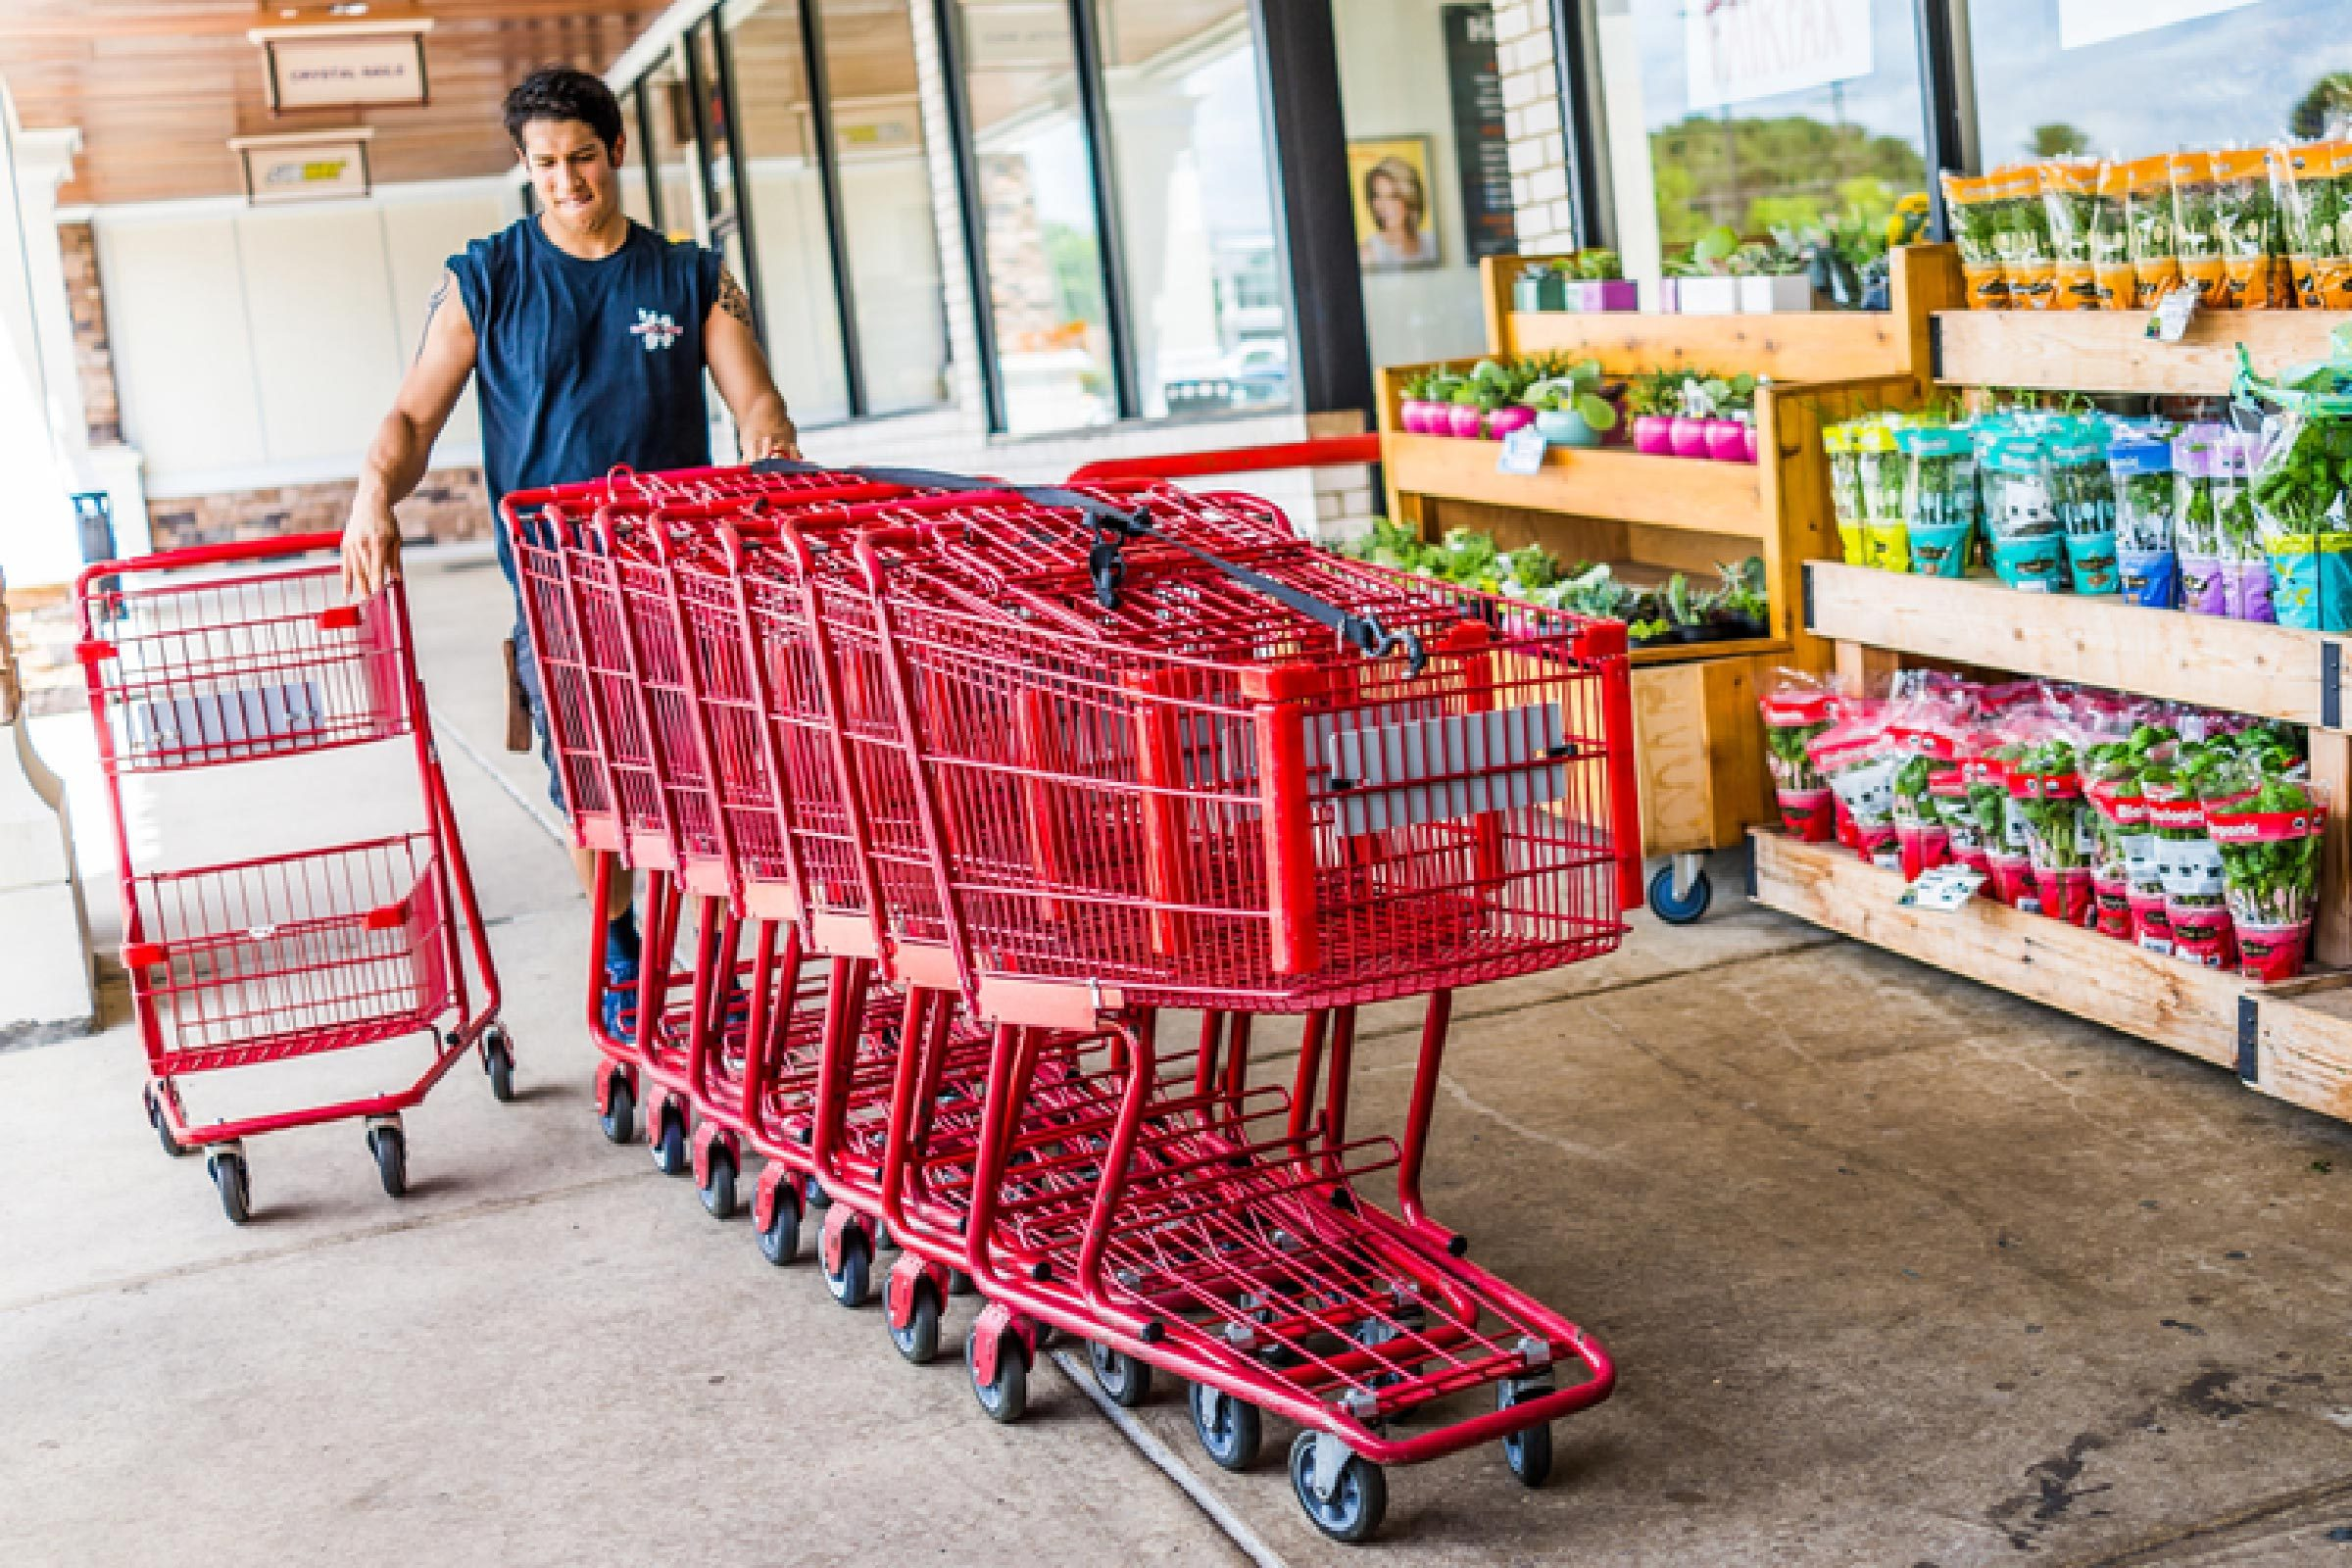 d126c4d7 The Truth About What Trader Joe's Crew Members Get Paid | Reader's ...